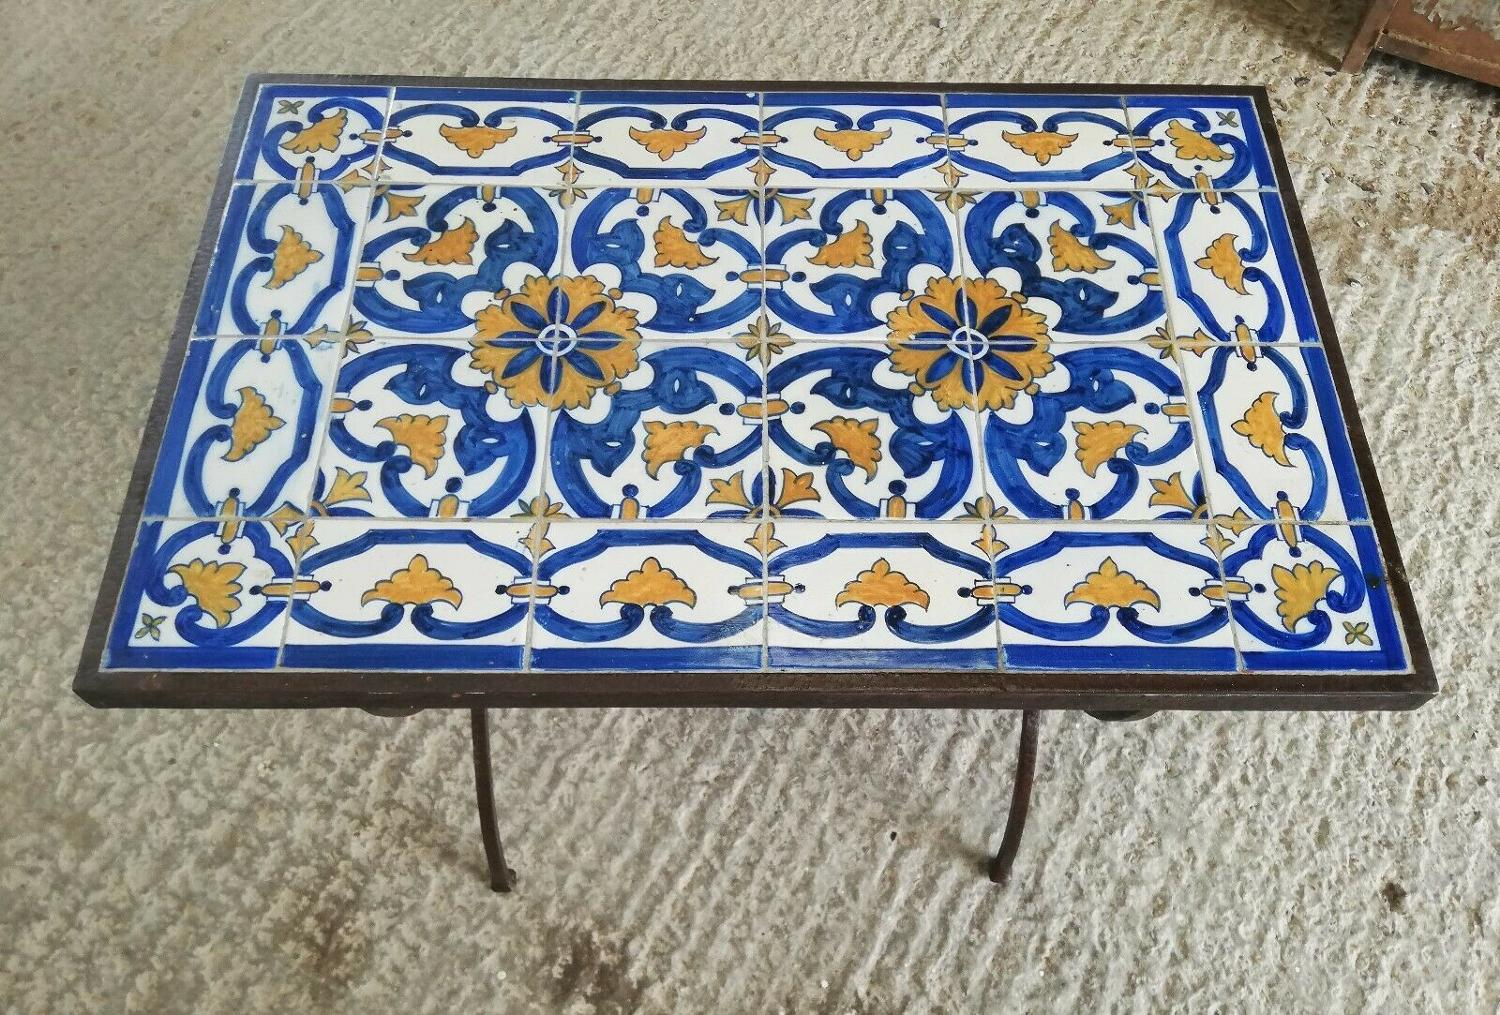 M1304 ANTIQUE TILED OUTDOOR COFFEE TABLE WITH ARTS AND CRAFTS BASE